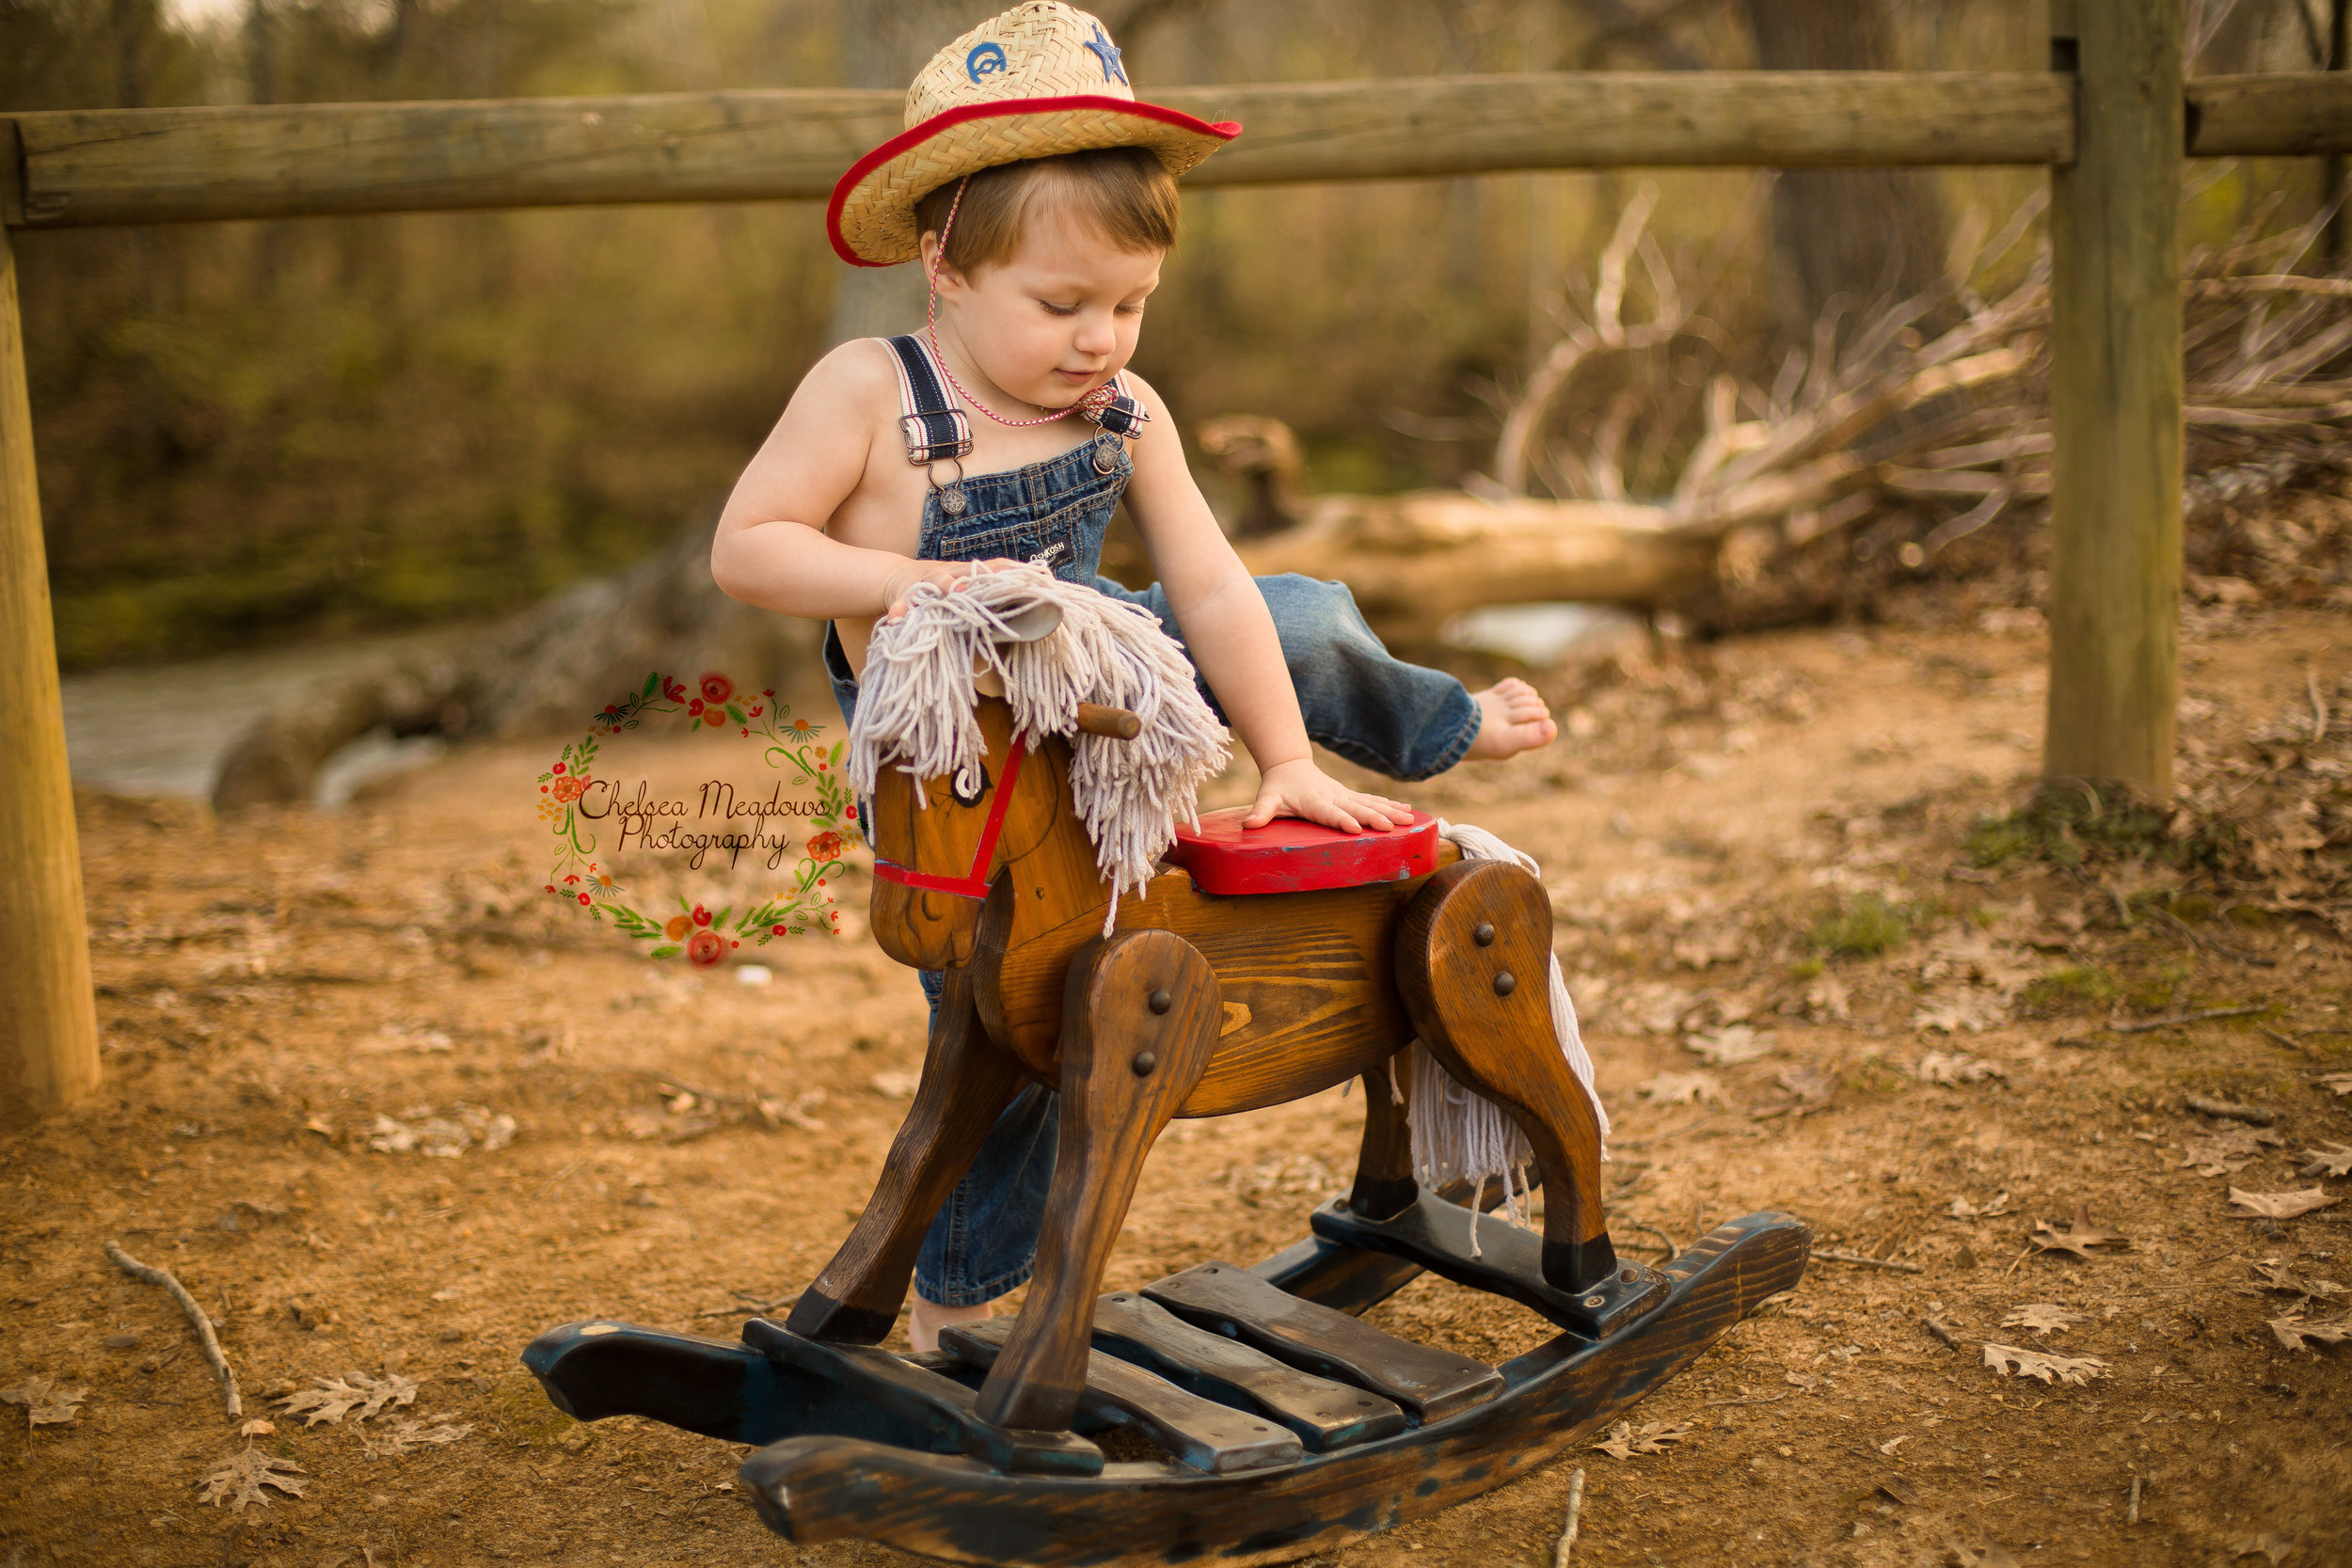 Grayson Cowboy Photos - Nashville family Photographer - Chelsea Meadows Photography (3)_edited-1.jpg